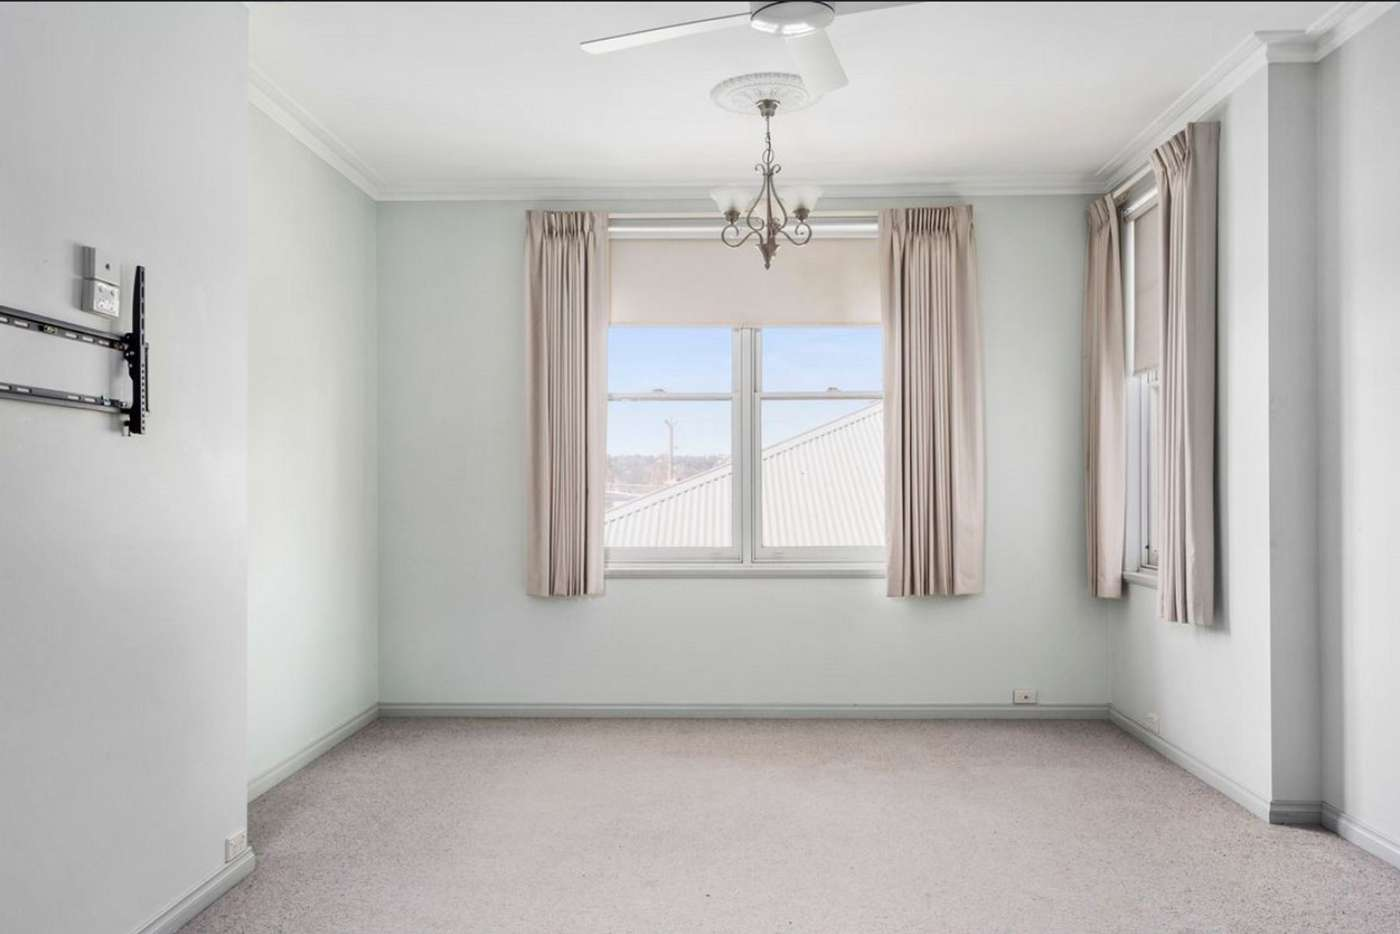 Sixth view of Homely townhouse listing, 4/125 Mitchell street, Bendigo VIC 3550